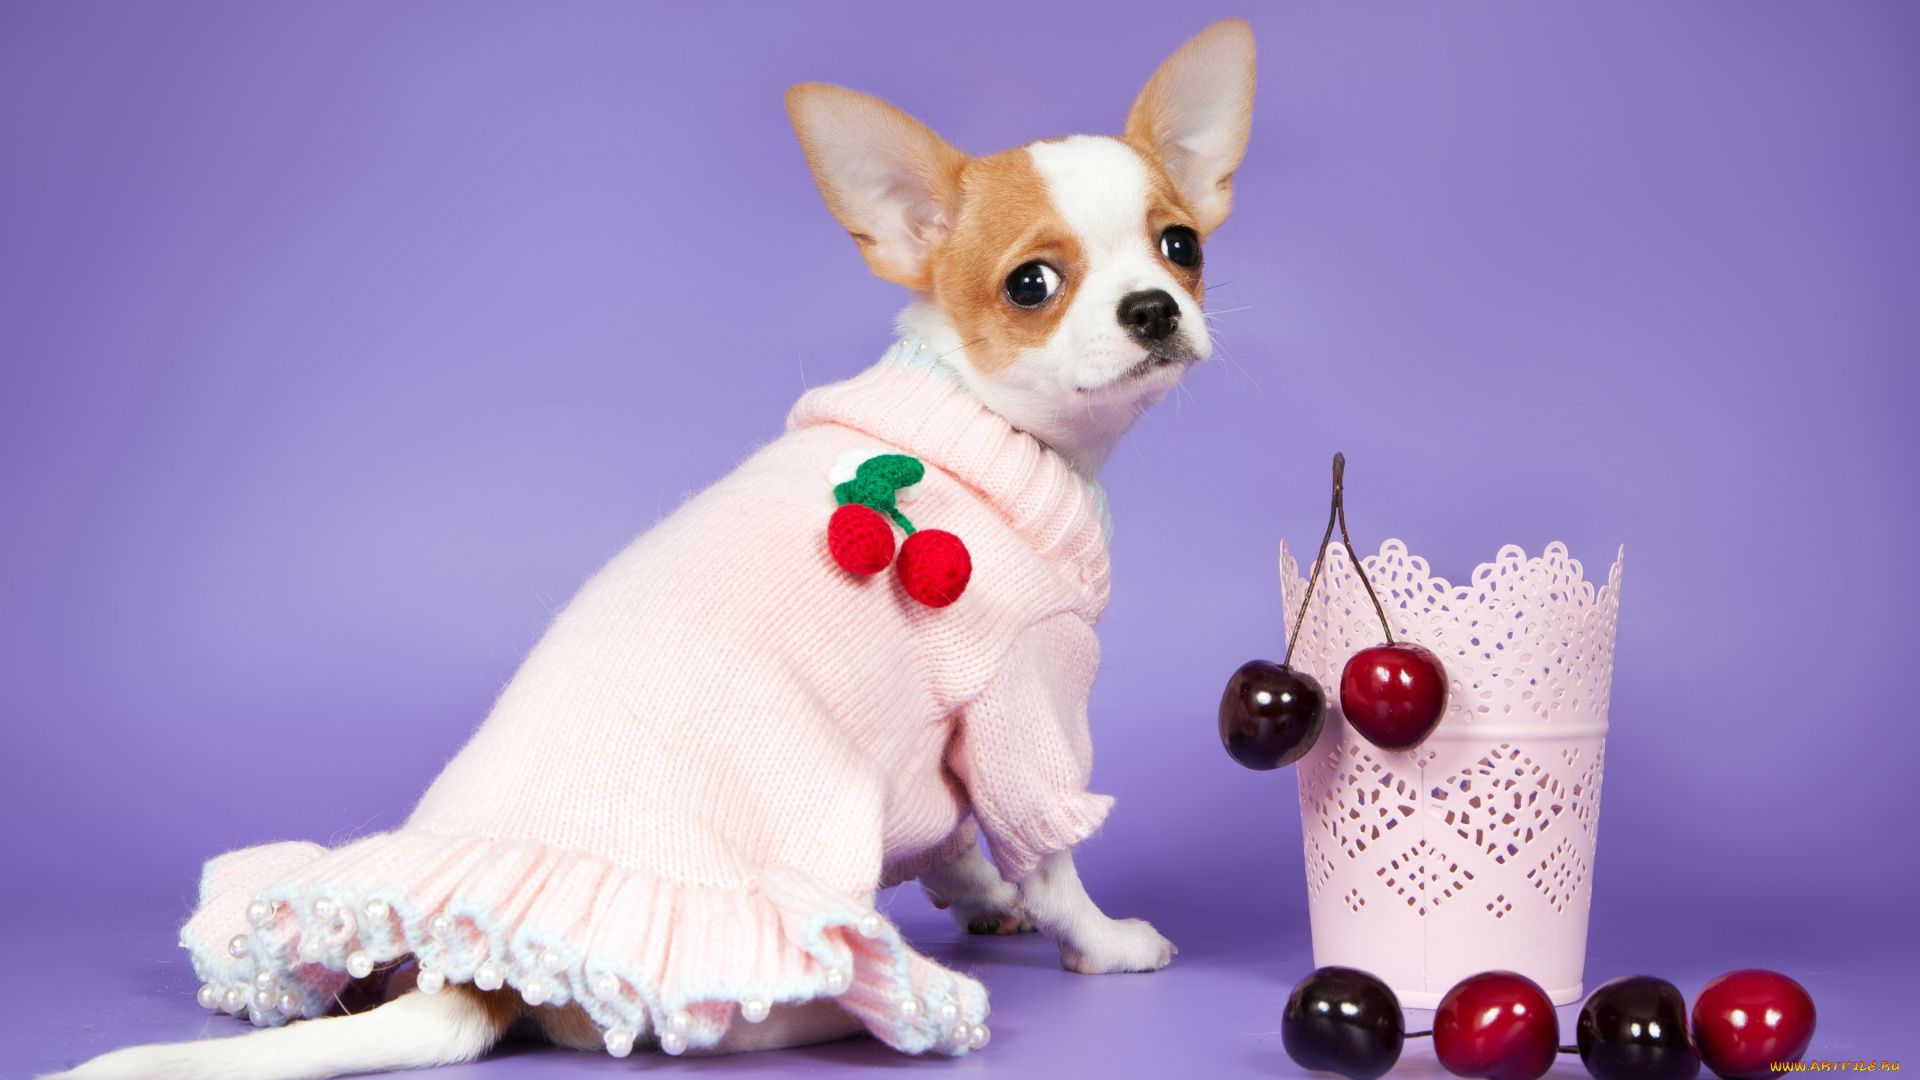 Of Wallpapers Images Chihuahua